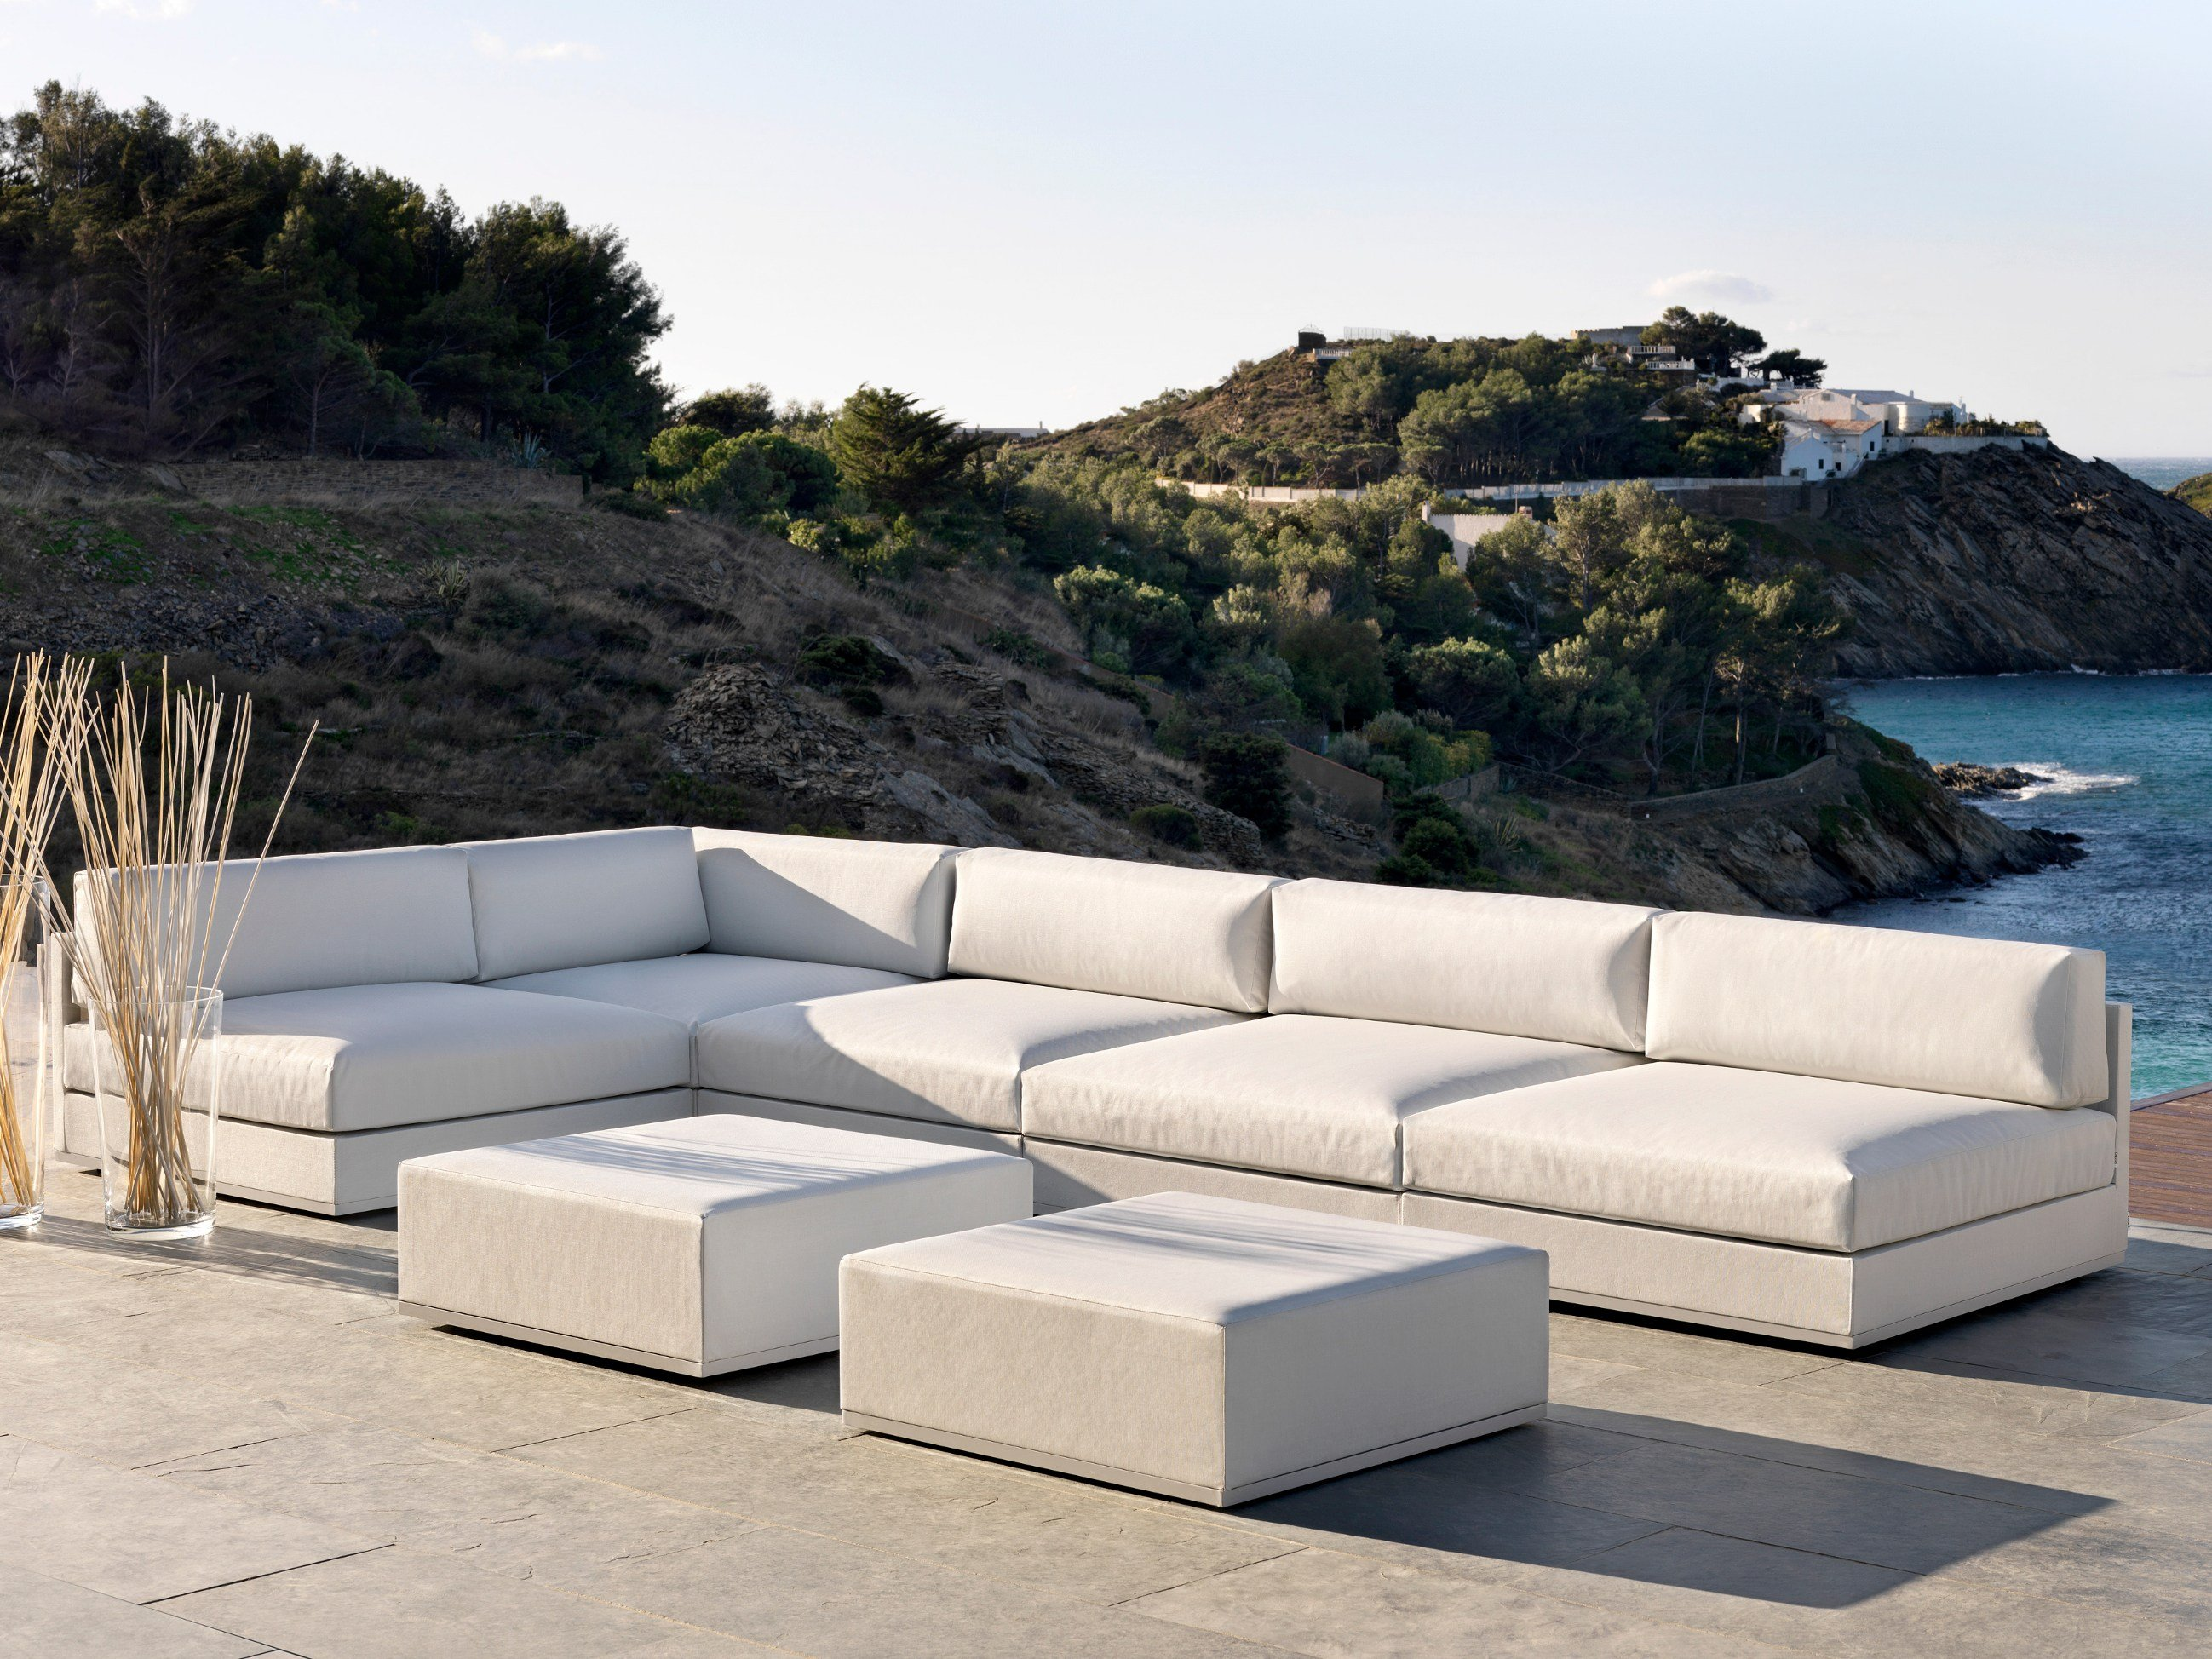 Mood low divano angolare by bivaq design andr s bluth for Design da giardino